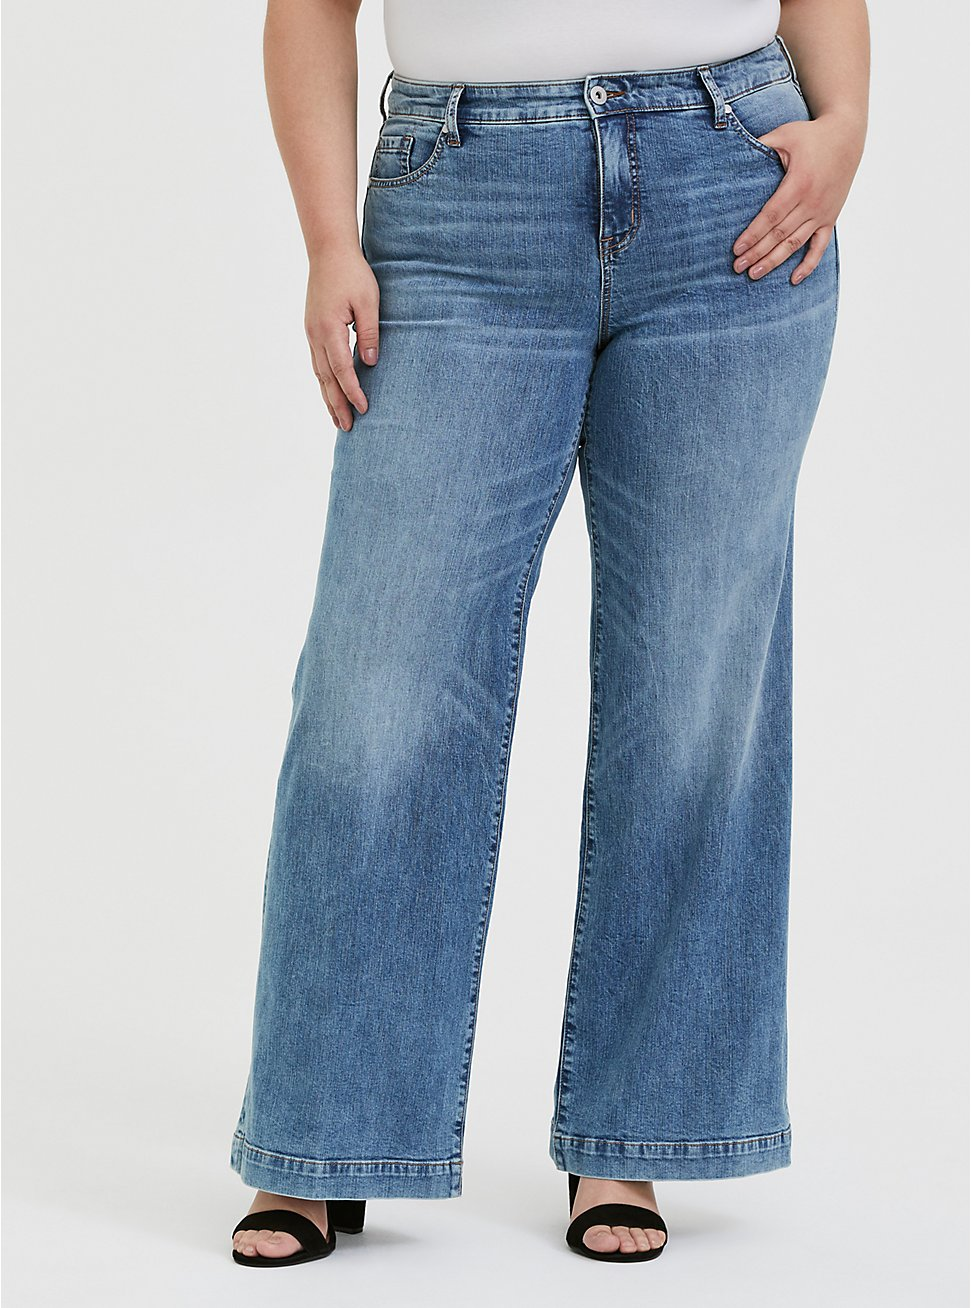 High Rise Wide Leg Jean - Vintage Stretch Light Wash, SLOW MOTION, hi-res